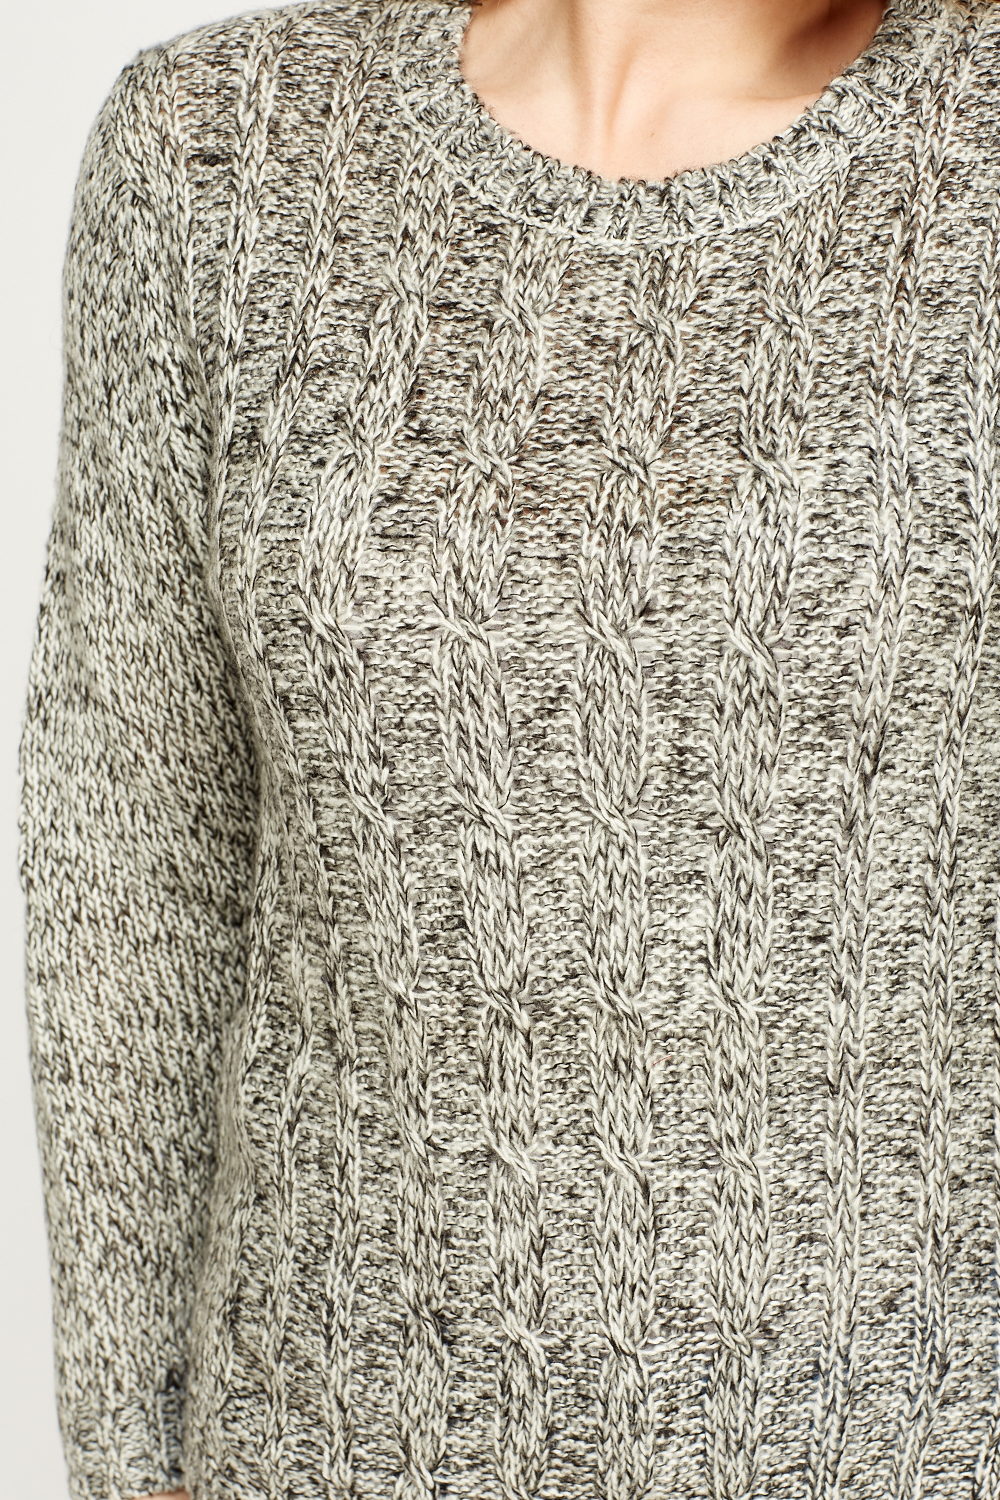 Cable Speckled Knit Jumper - Just ?2